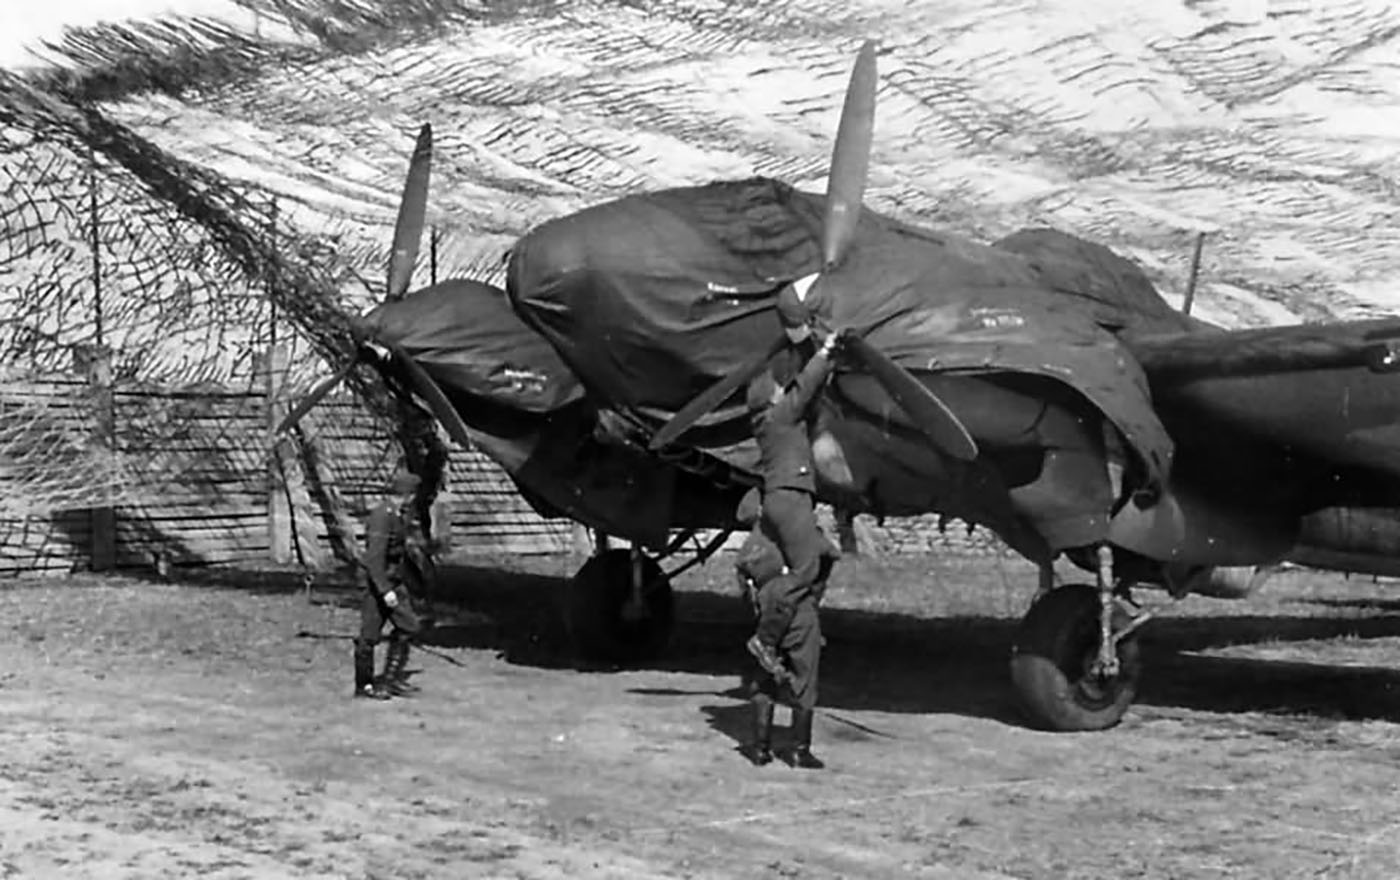 Heinkel He 111 bomber crew putting on their weather proof covers 01